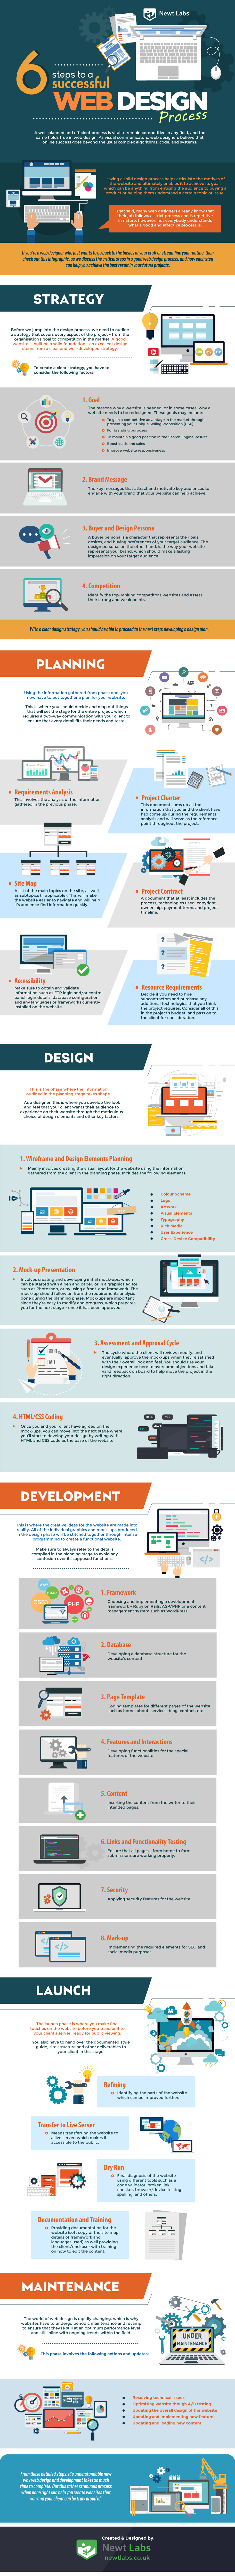 6 Steps To A Successful Web Design Process Infographic